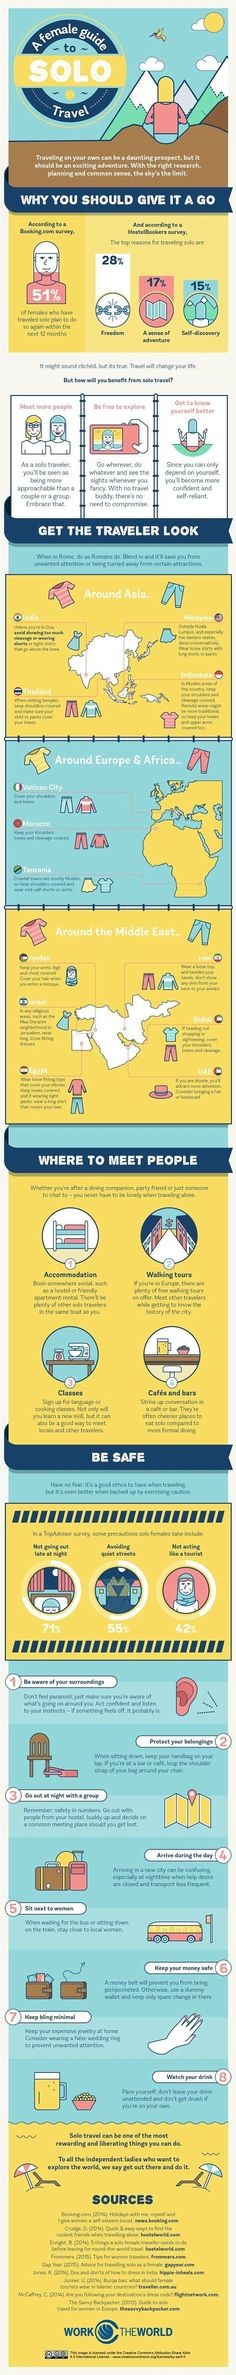 Solo female travelling do's and don'ts in this handy infographic | Daily Mail Online